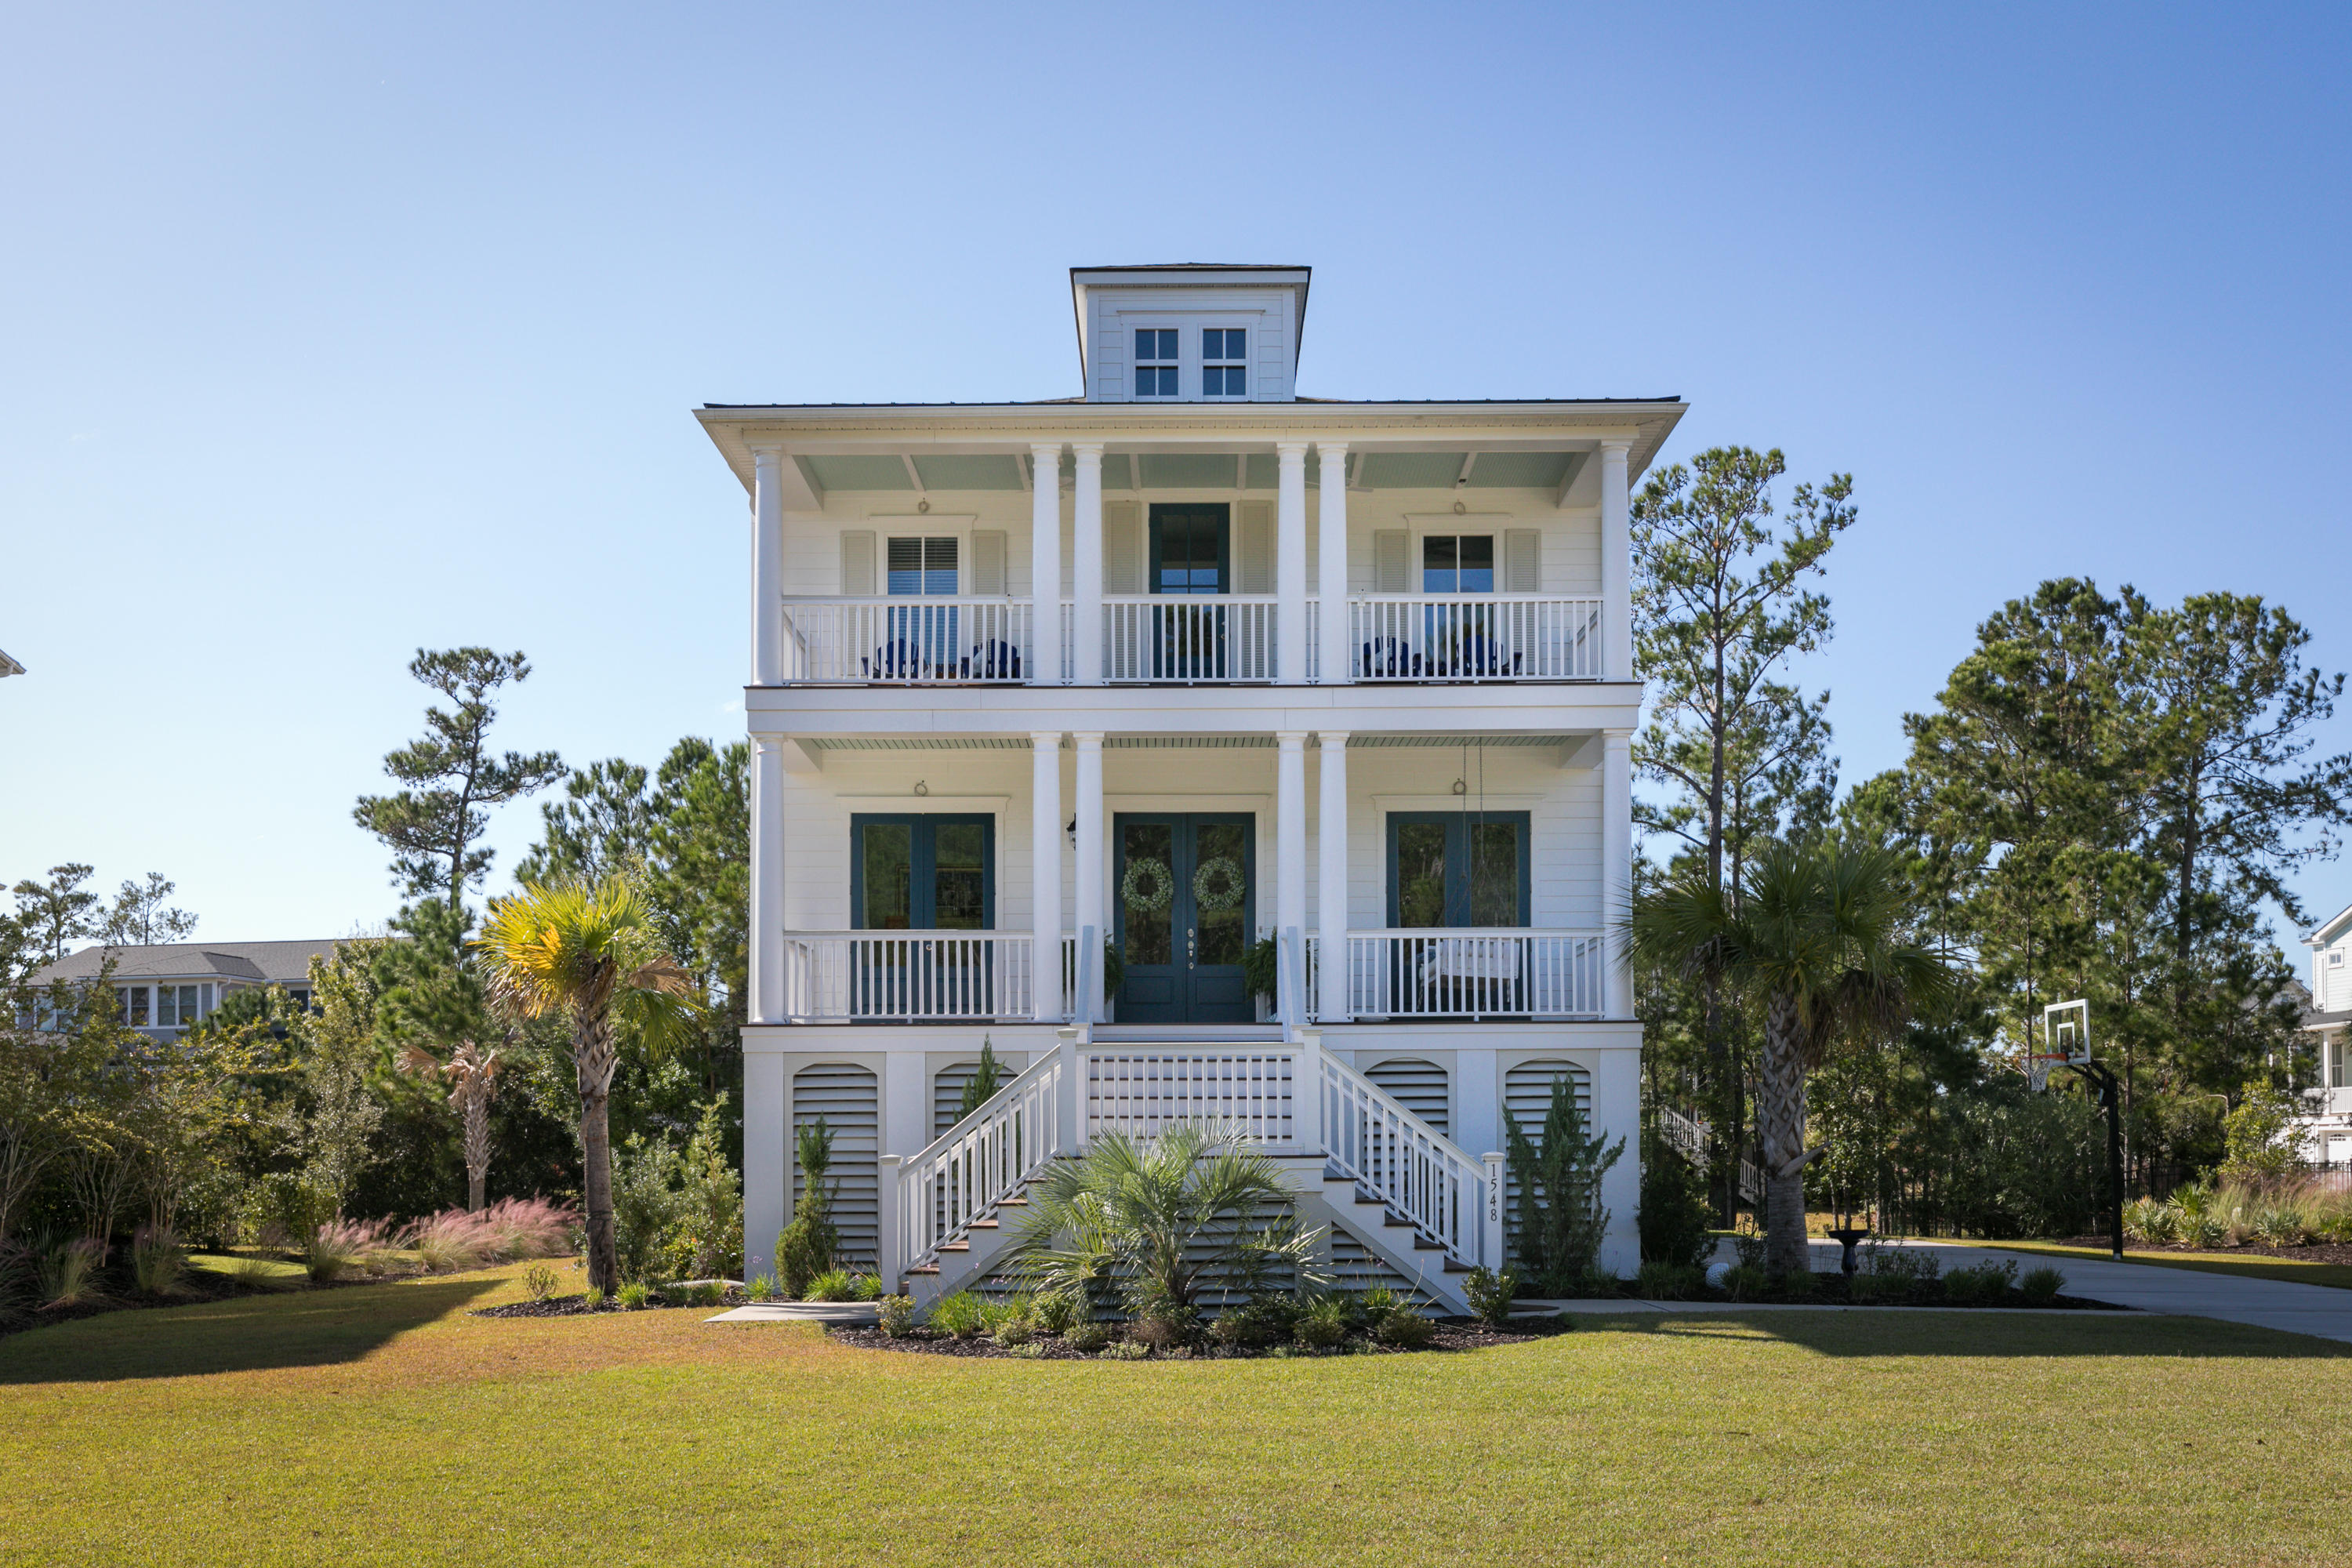 Rivertowne Country Club Homes For Sale - 1548 Rivertowne Country Club, Mount Pleasant, SC - 18